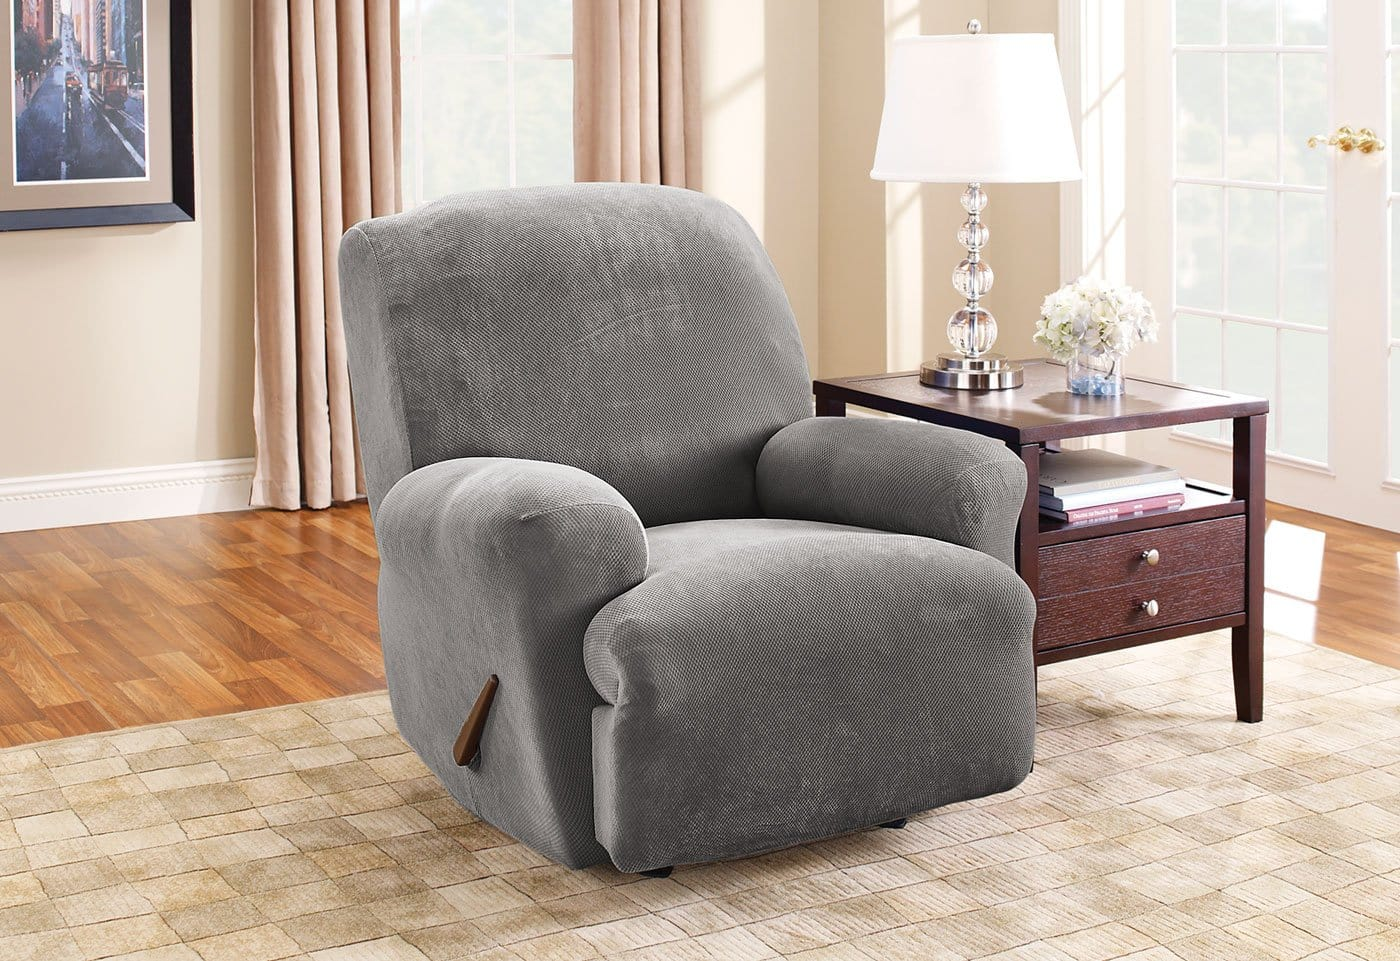 Stretch Piqué One Piece Recliner Slipcover Form Fit Machine Washable - Recliner / Flannel Gray